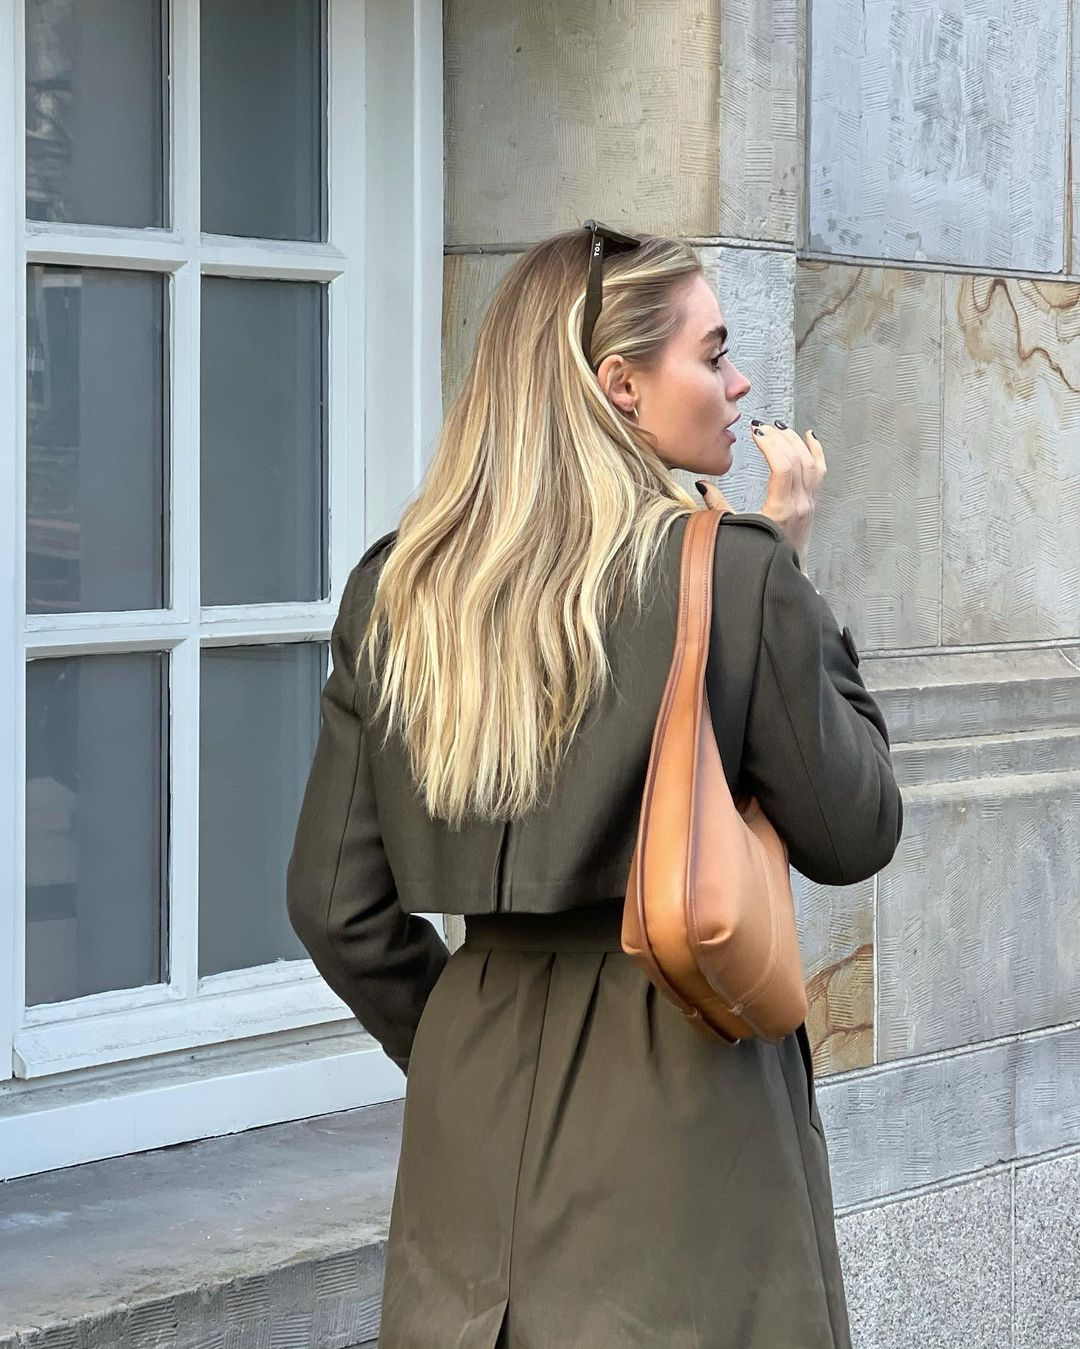 claire-rose-cliteur-coach-ergo-bag-instagram